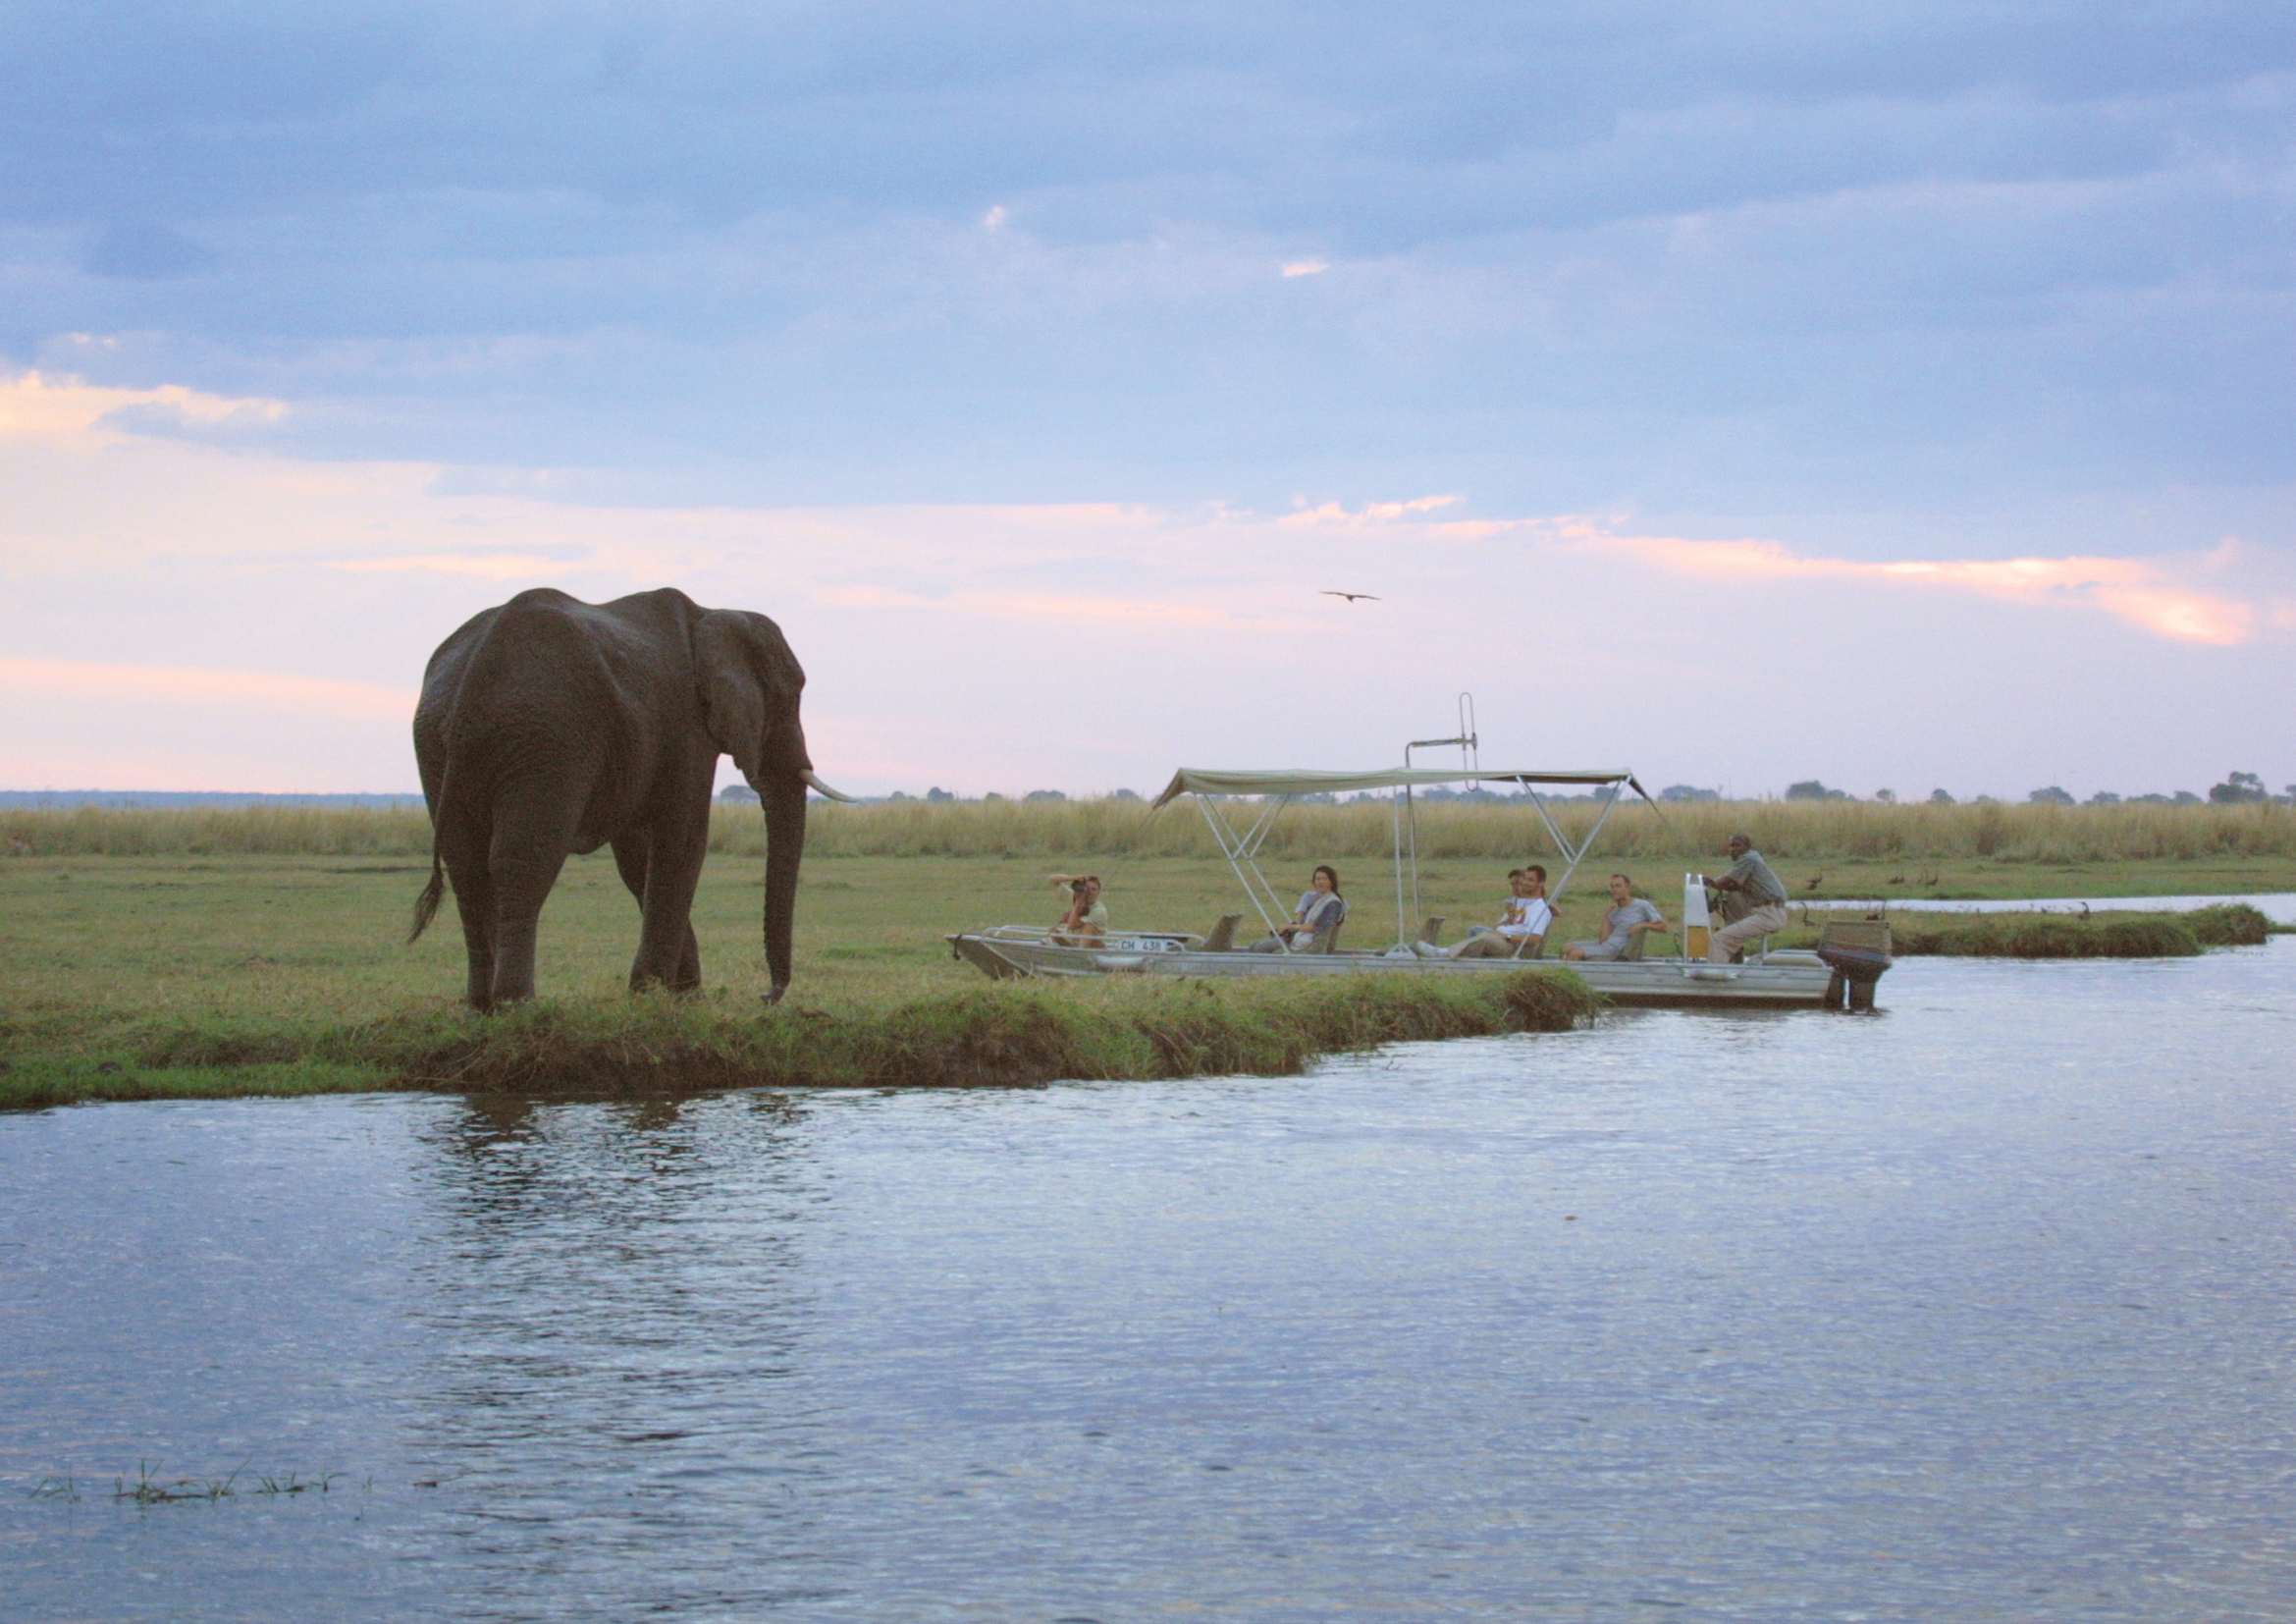 river cruise for women in Southern Africa